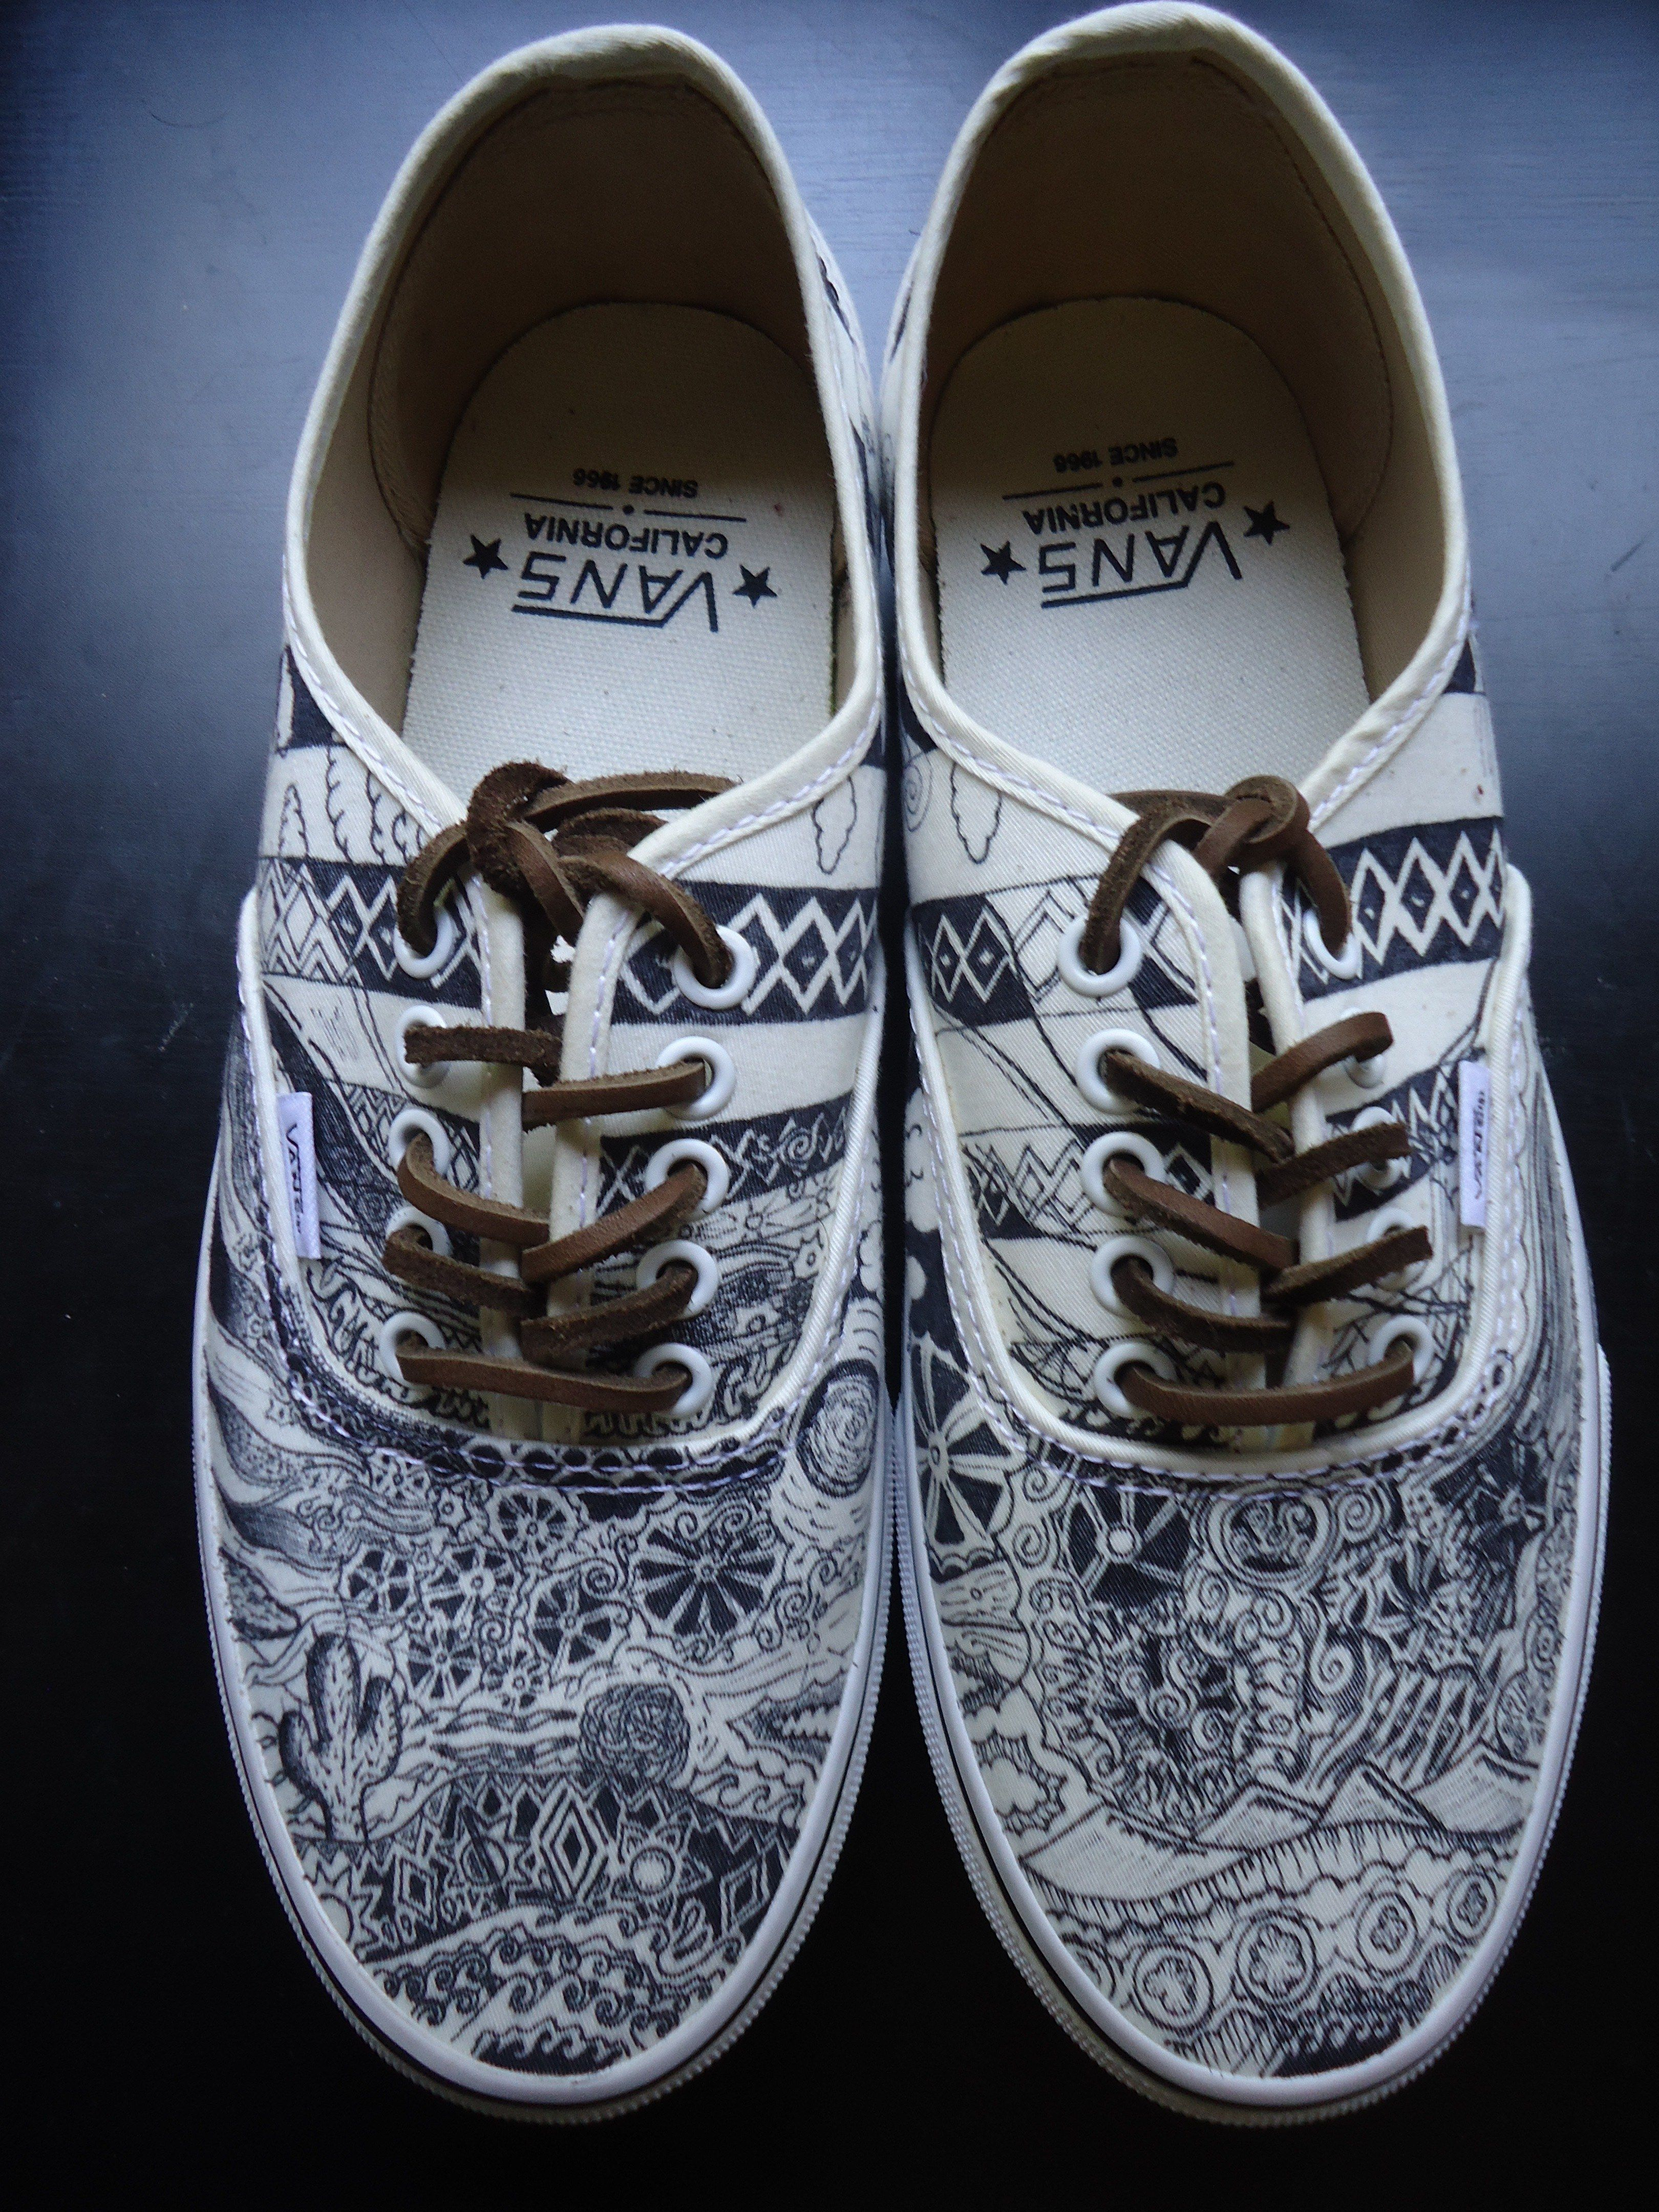 1aj67b I Jpg 3240 215 4320 Custom Vans Shoes Shoes